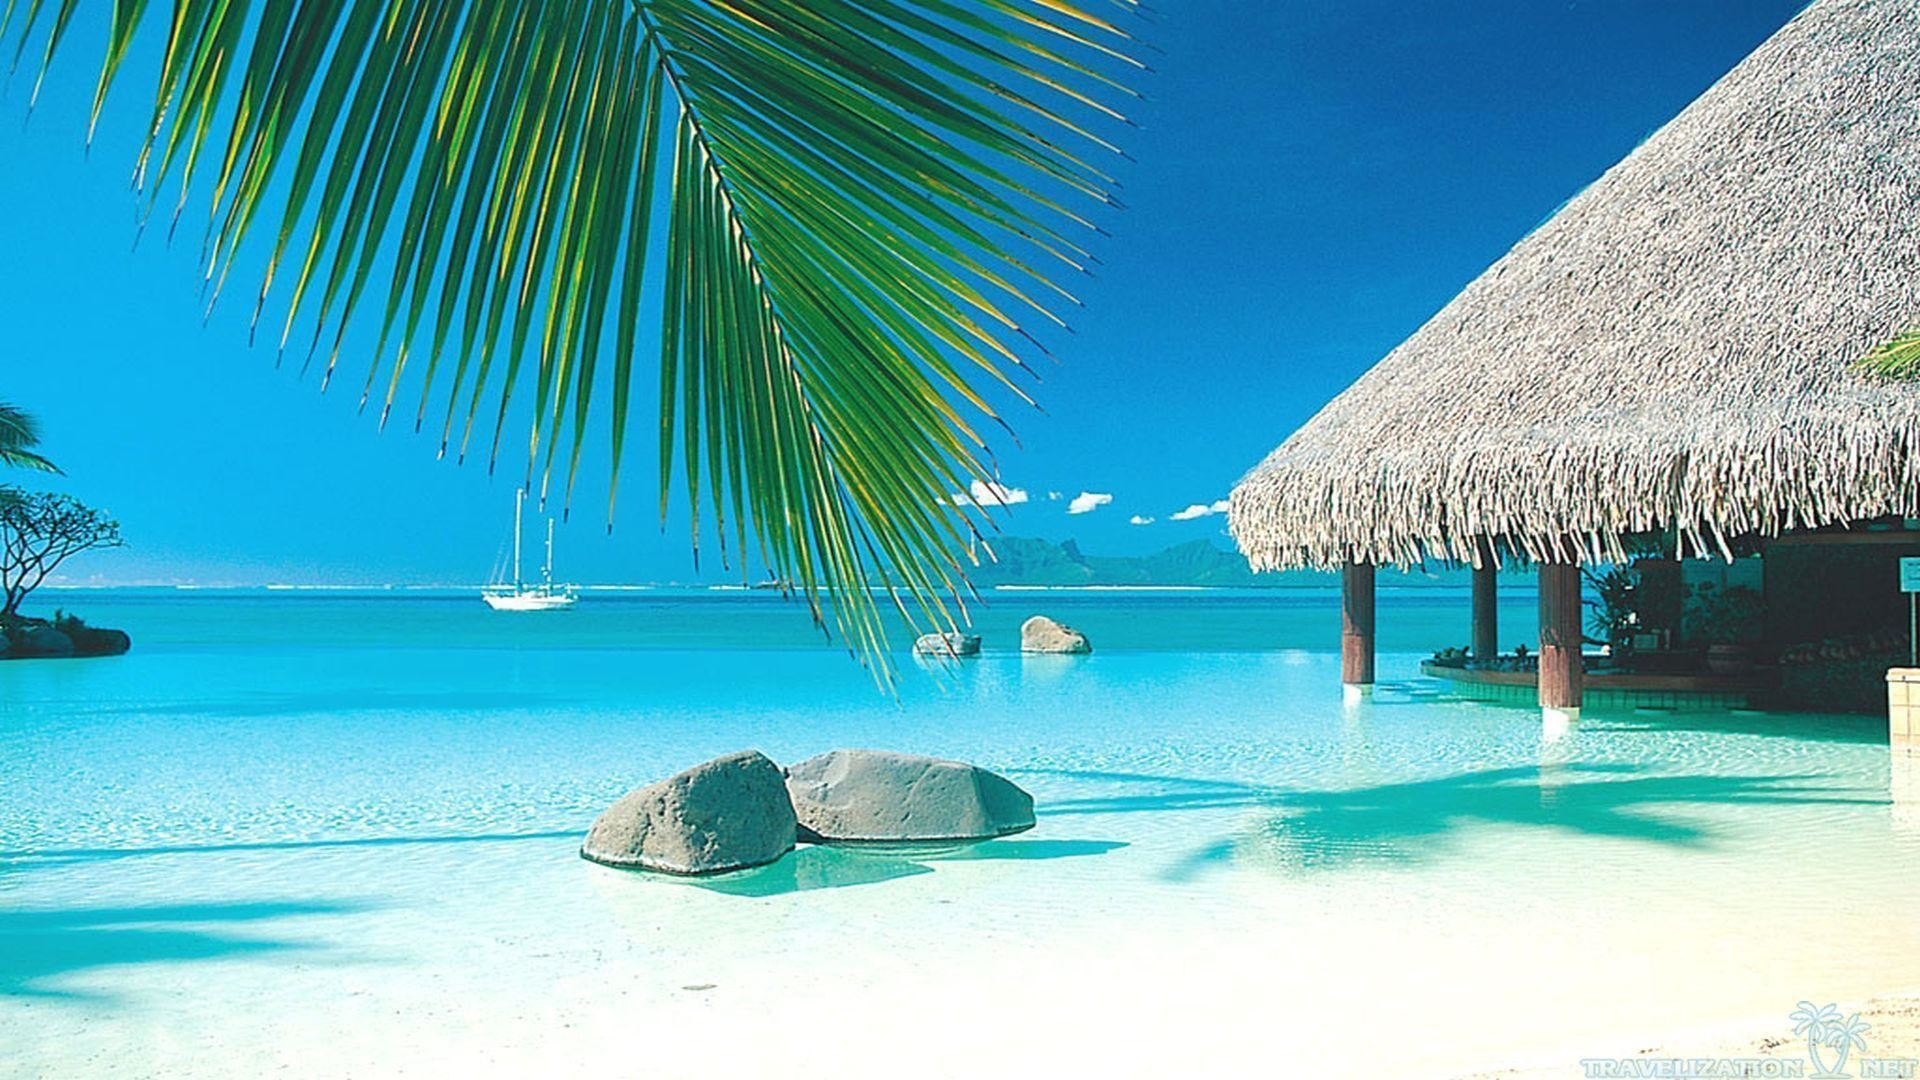 Hd Tropical Island Beach Paradise Wallpapers And Backgrounds: Beach Paradise Wallpaper ·① WallpaperTag